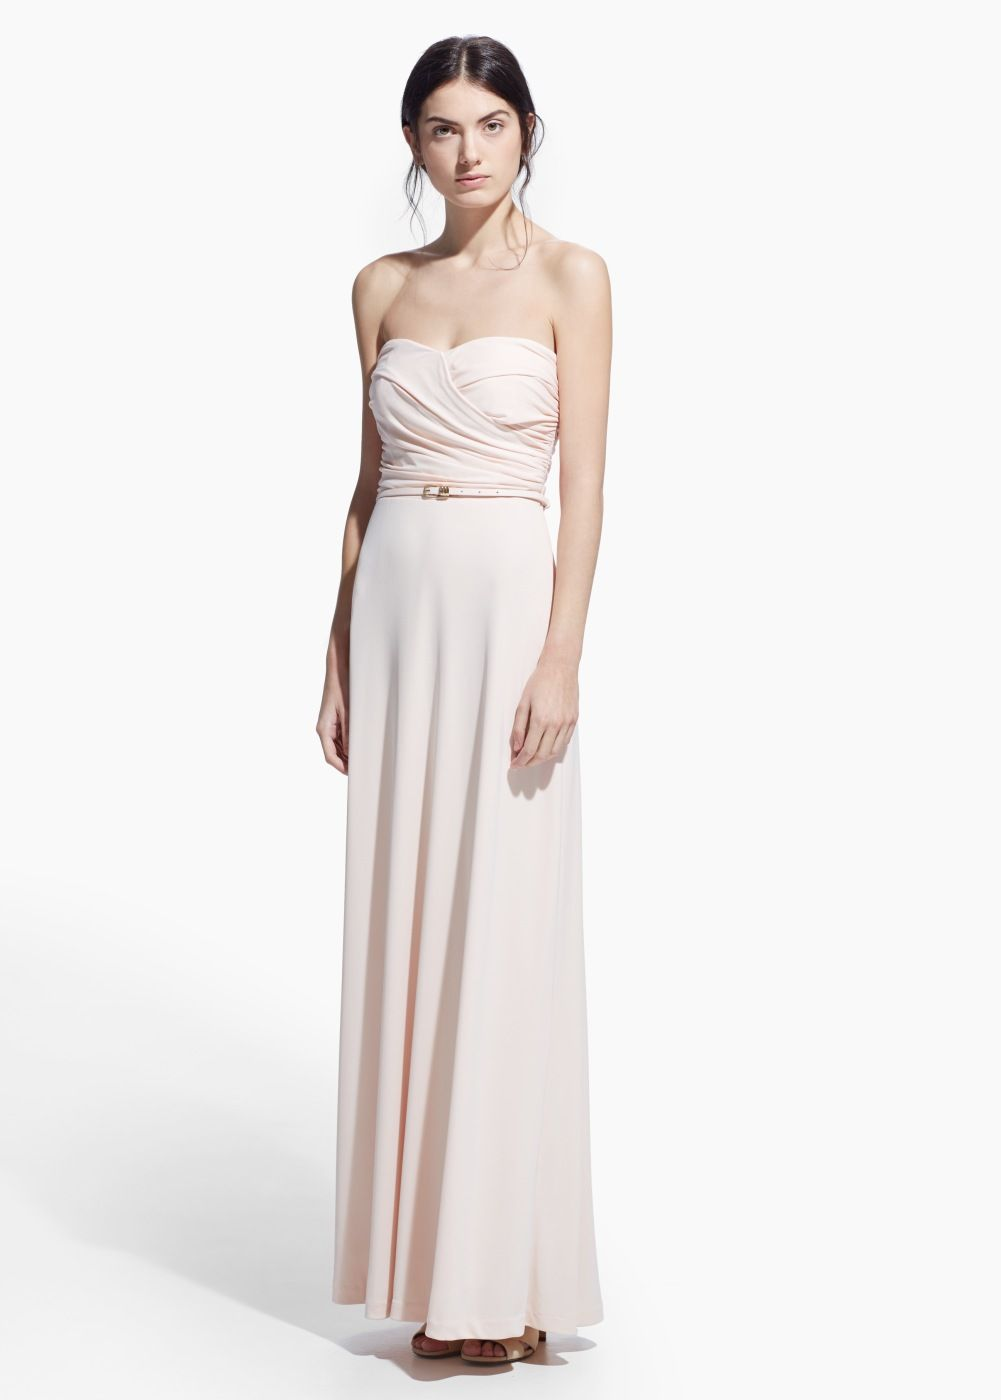 Draped gown $149